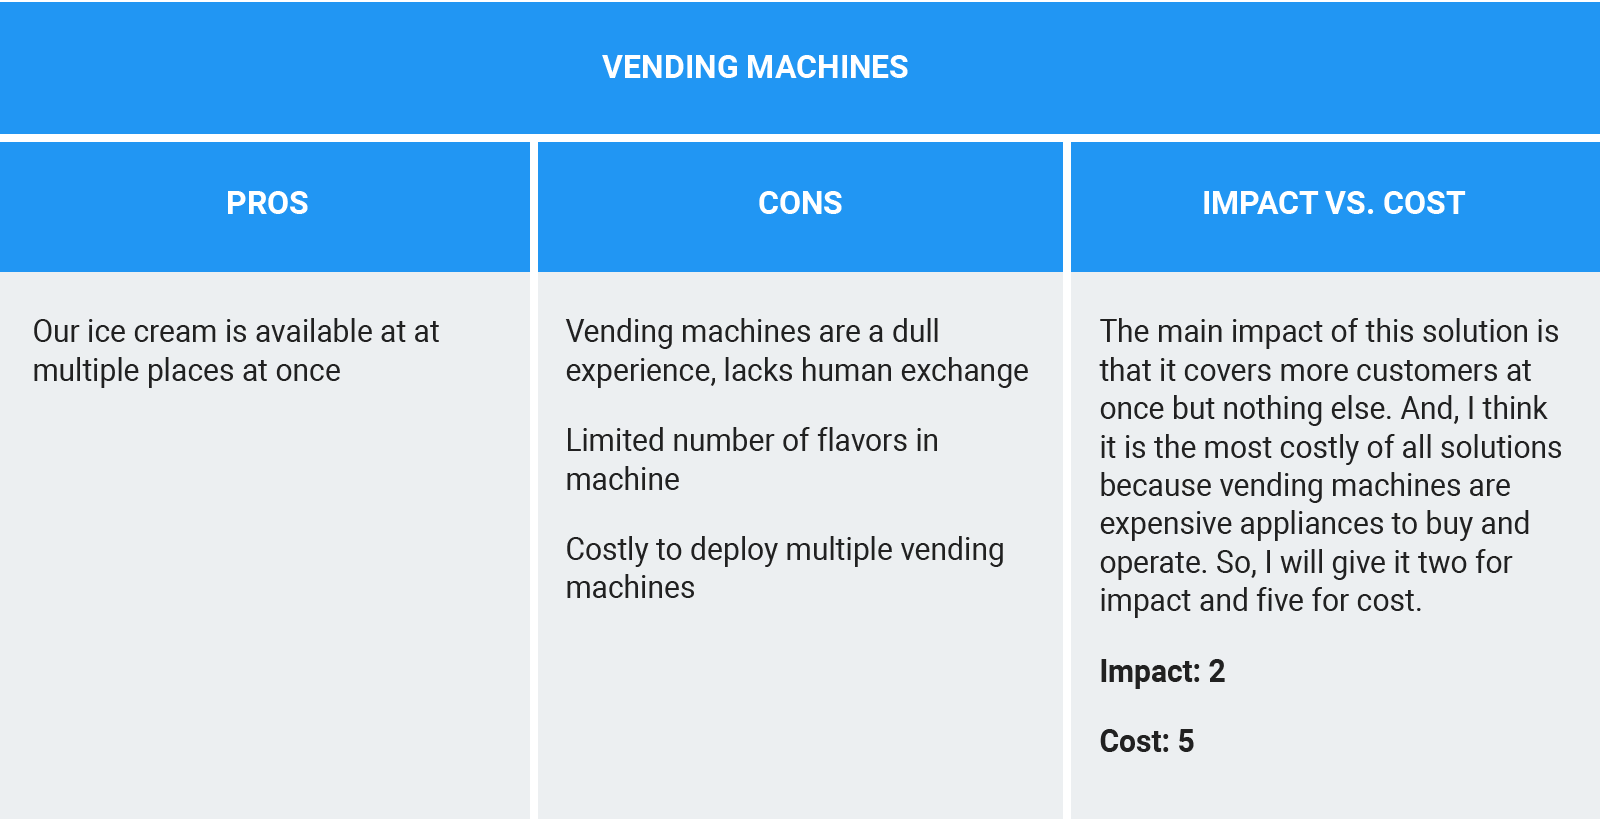 Tracking the pros and cons for the Vending Machines idea and evaluating how the idea scores relative to impact vs. cost